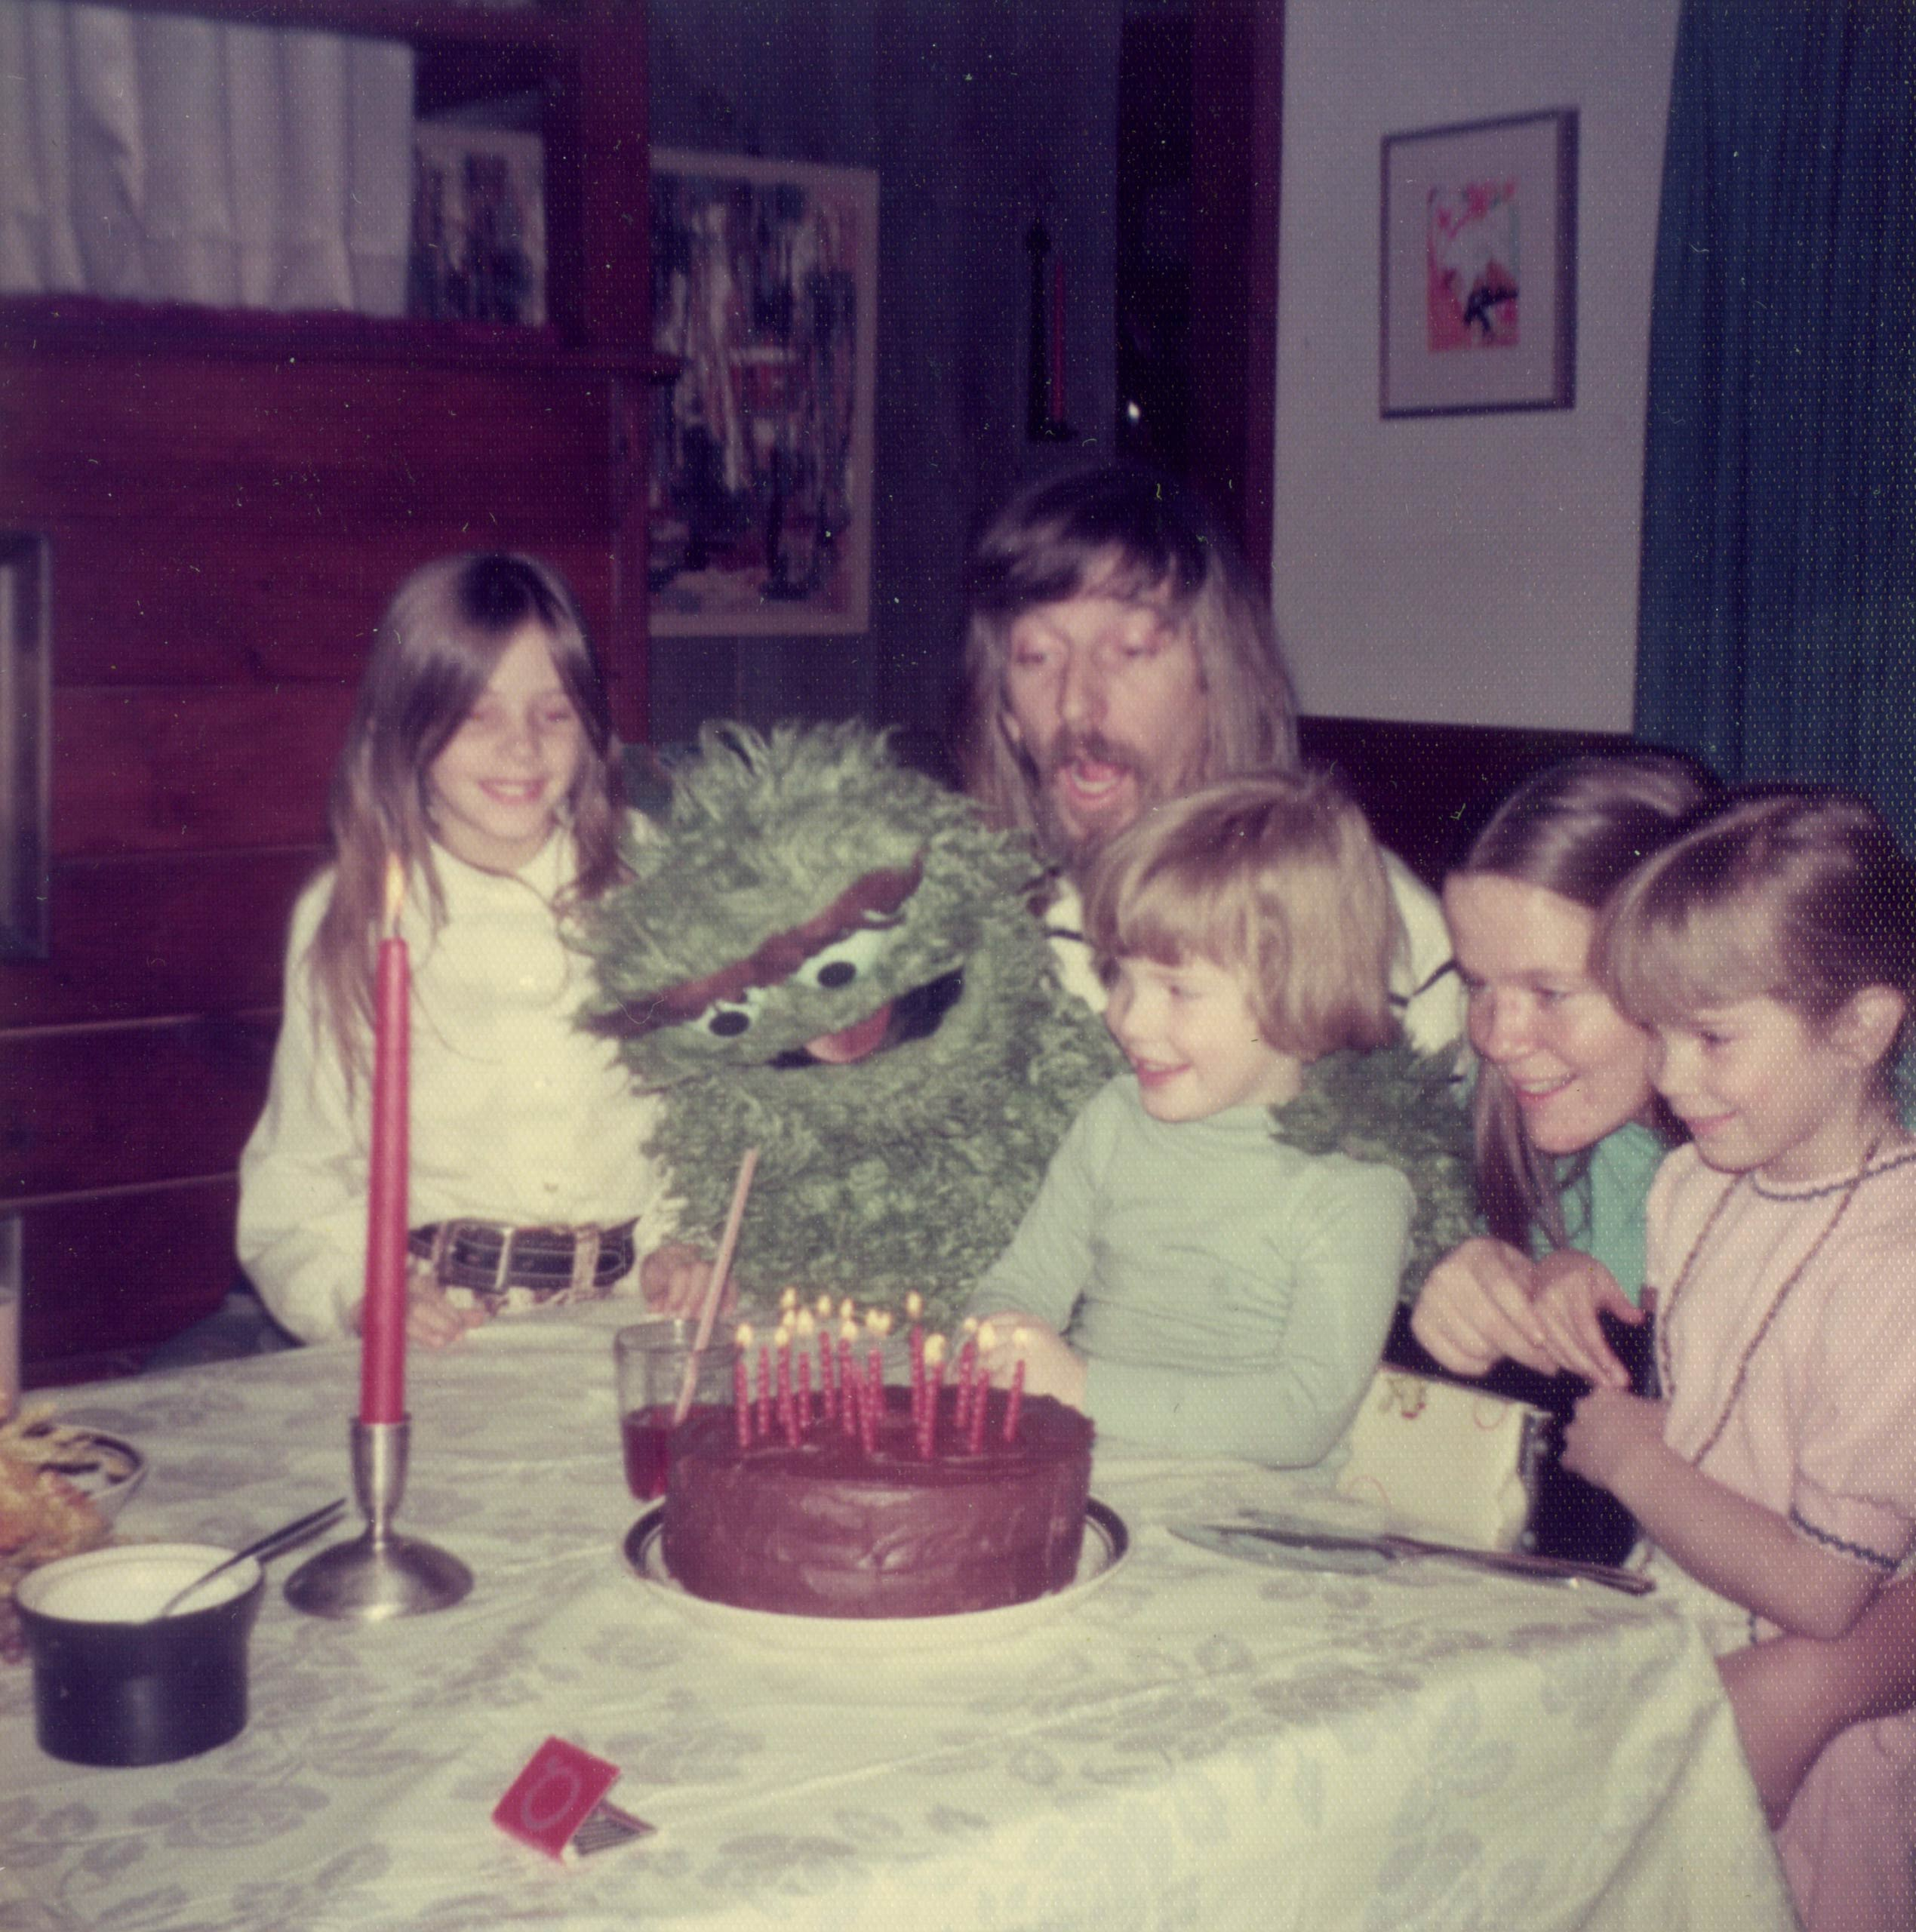 Caroll Spinney with his children and Oscar the Grouch at his child's birthday party.